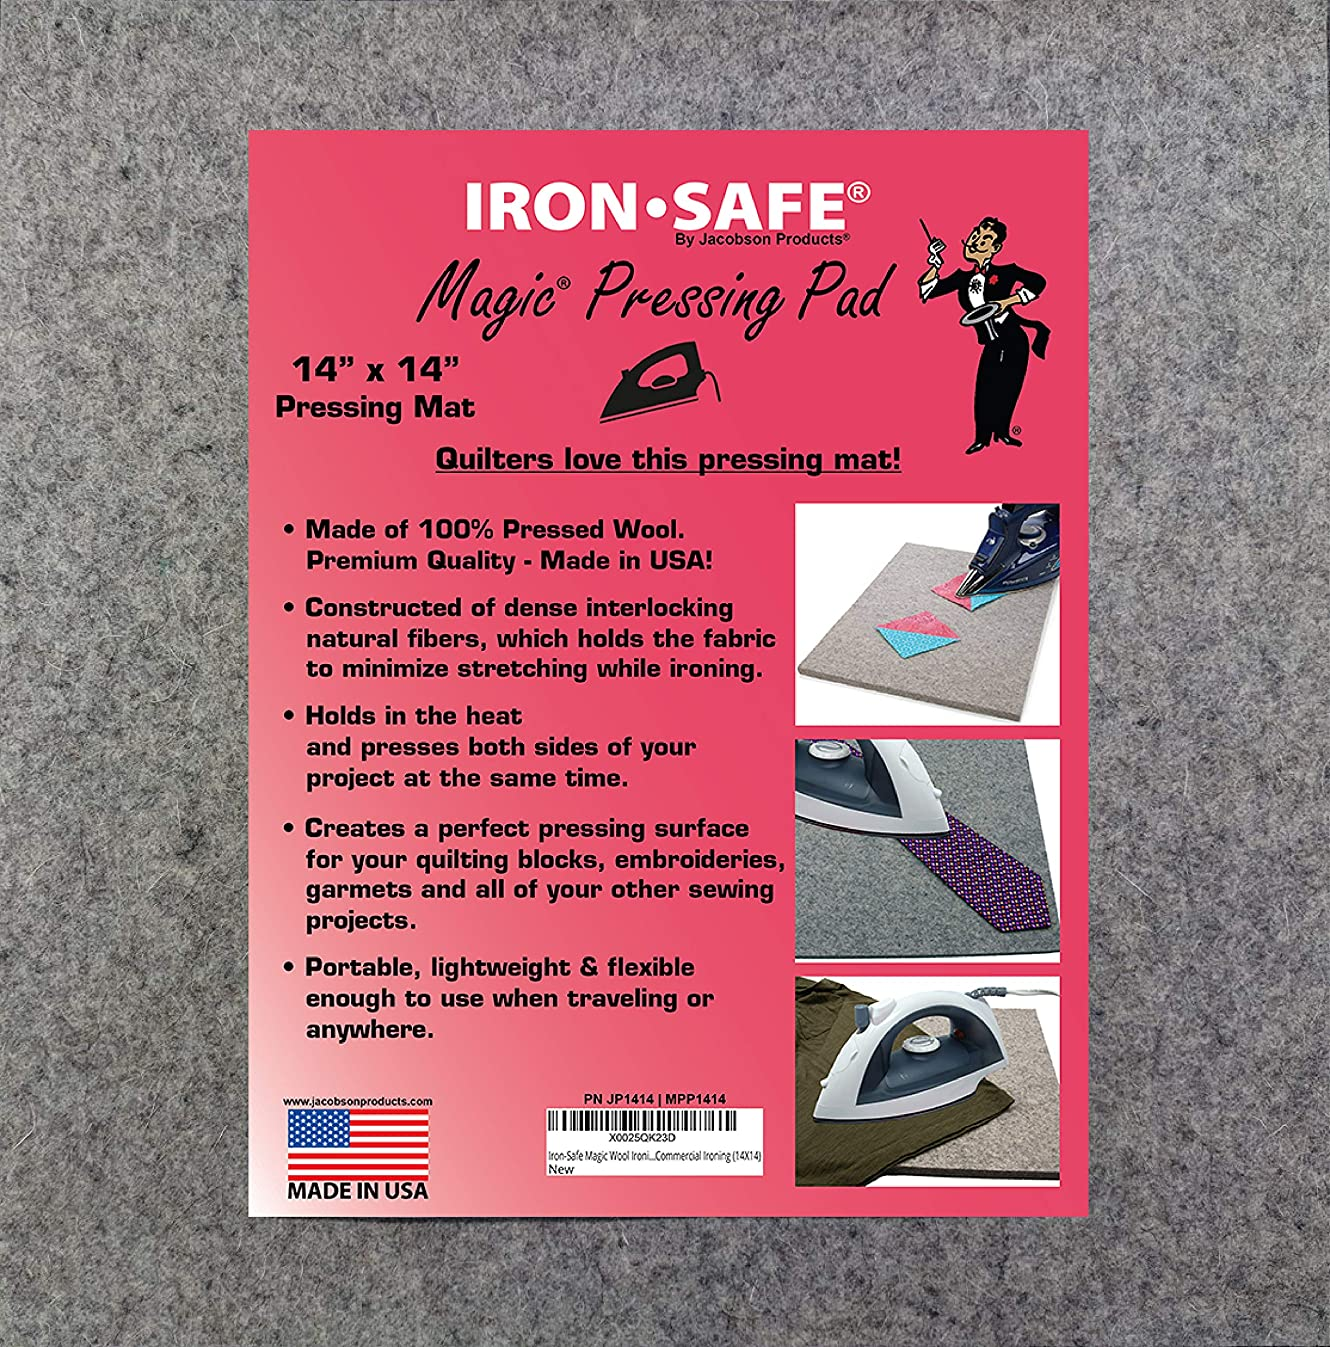 Jacobson Products Iron-Safe Premium Ironing Accessories - Top Hat Premium Non-Stick Sole Plate and Wool Pressing Mats (14 x 14 Wool Pad)